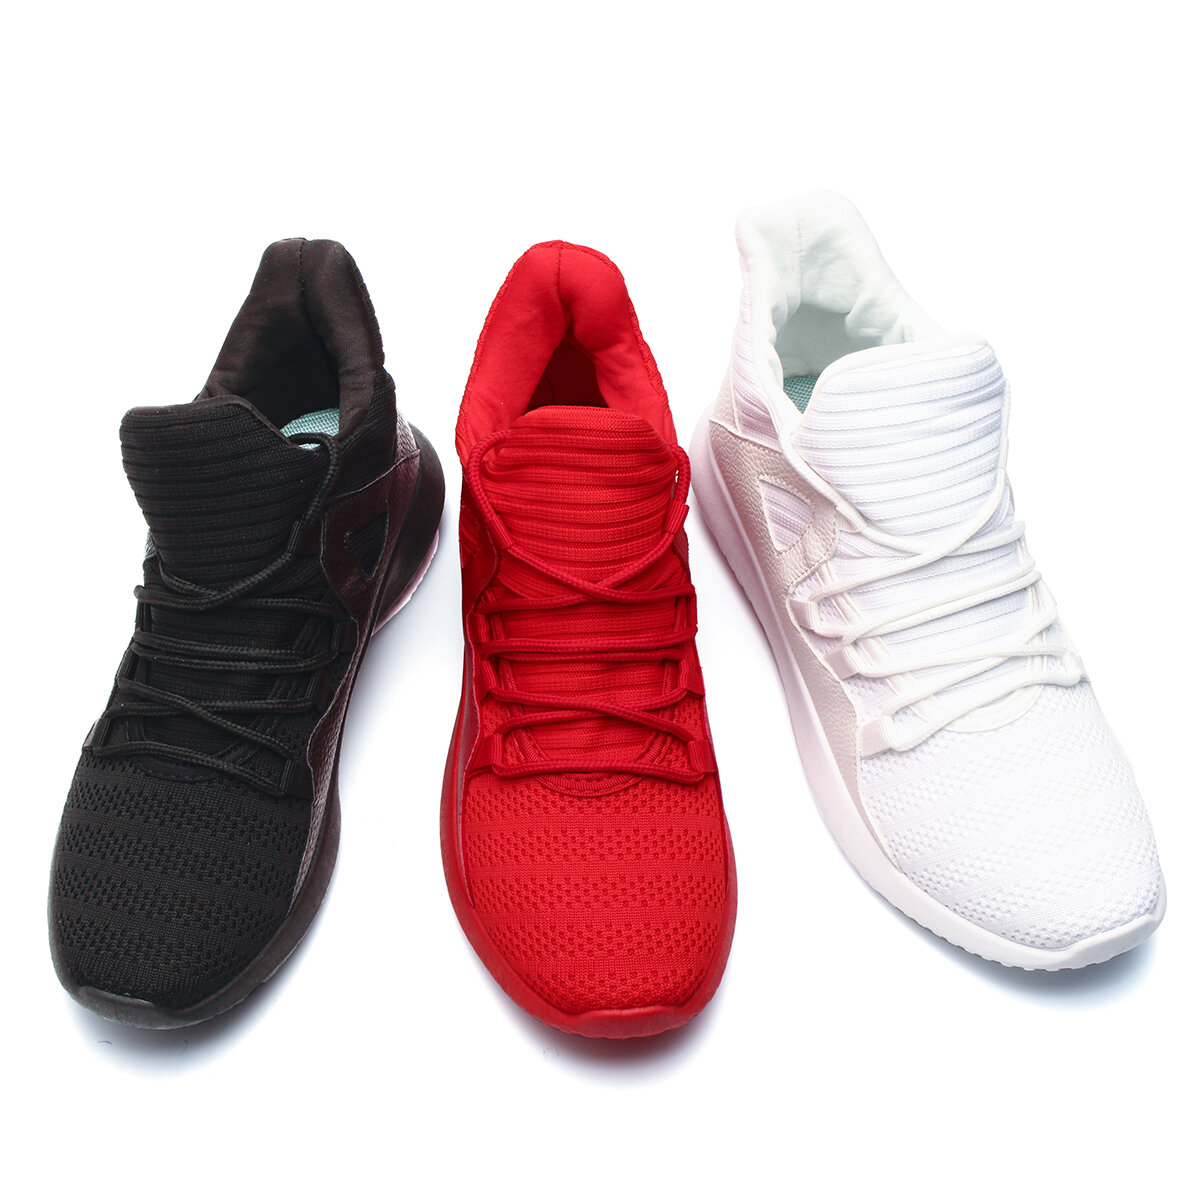 Men Microfiber Leather Stitching Soft Lace Up Running Sneakers Waterproof Non-Slip Fashion Shoes - 1